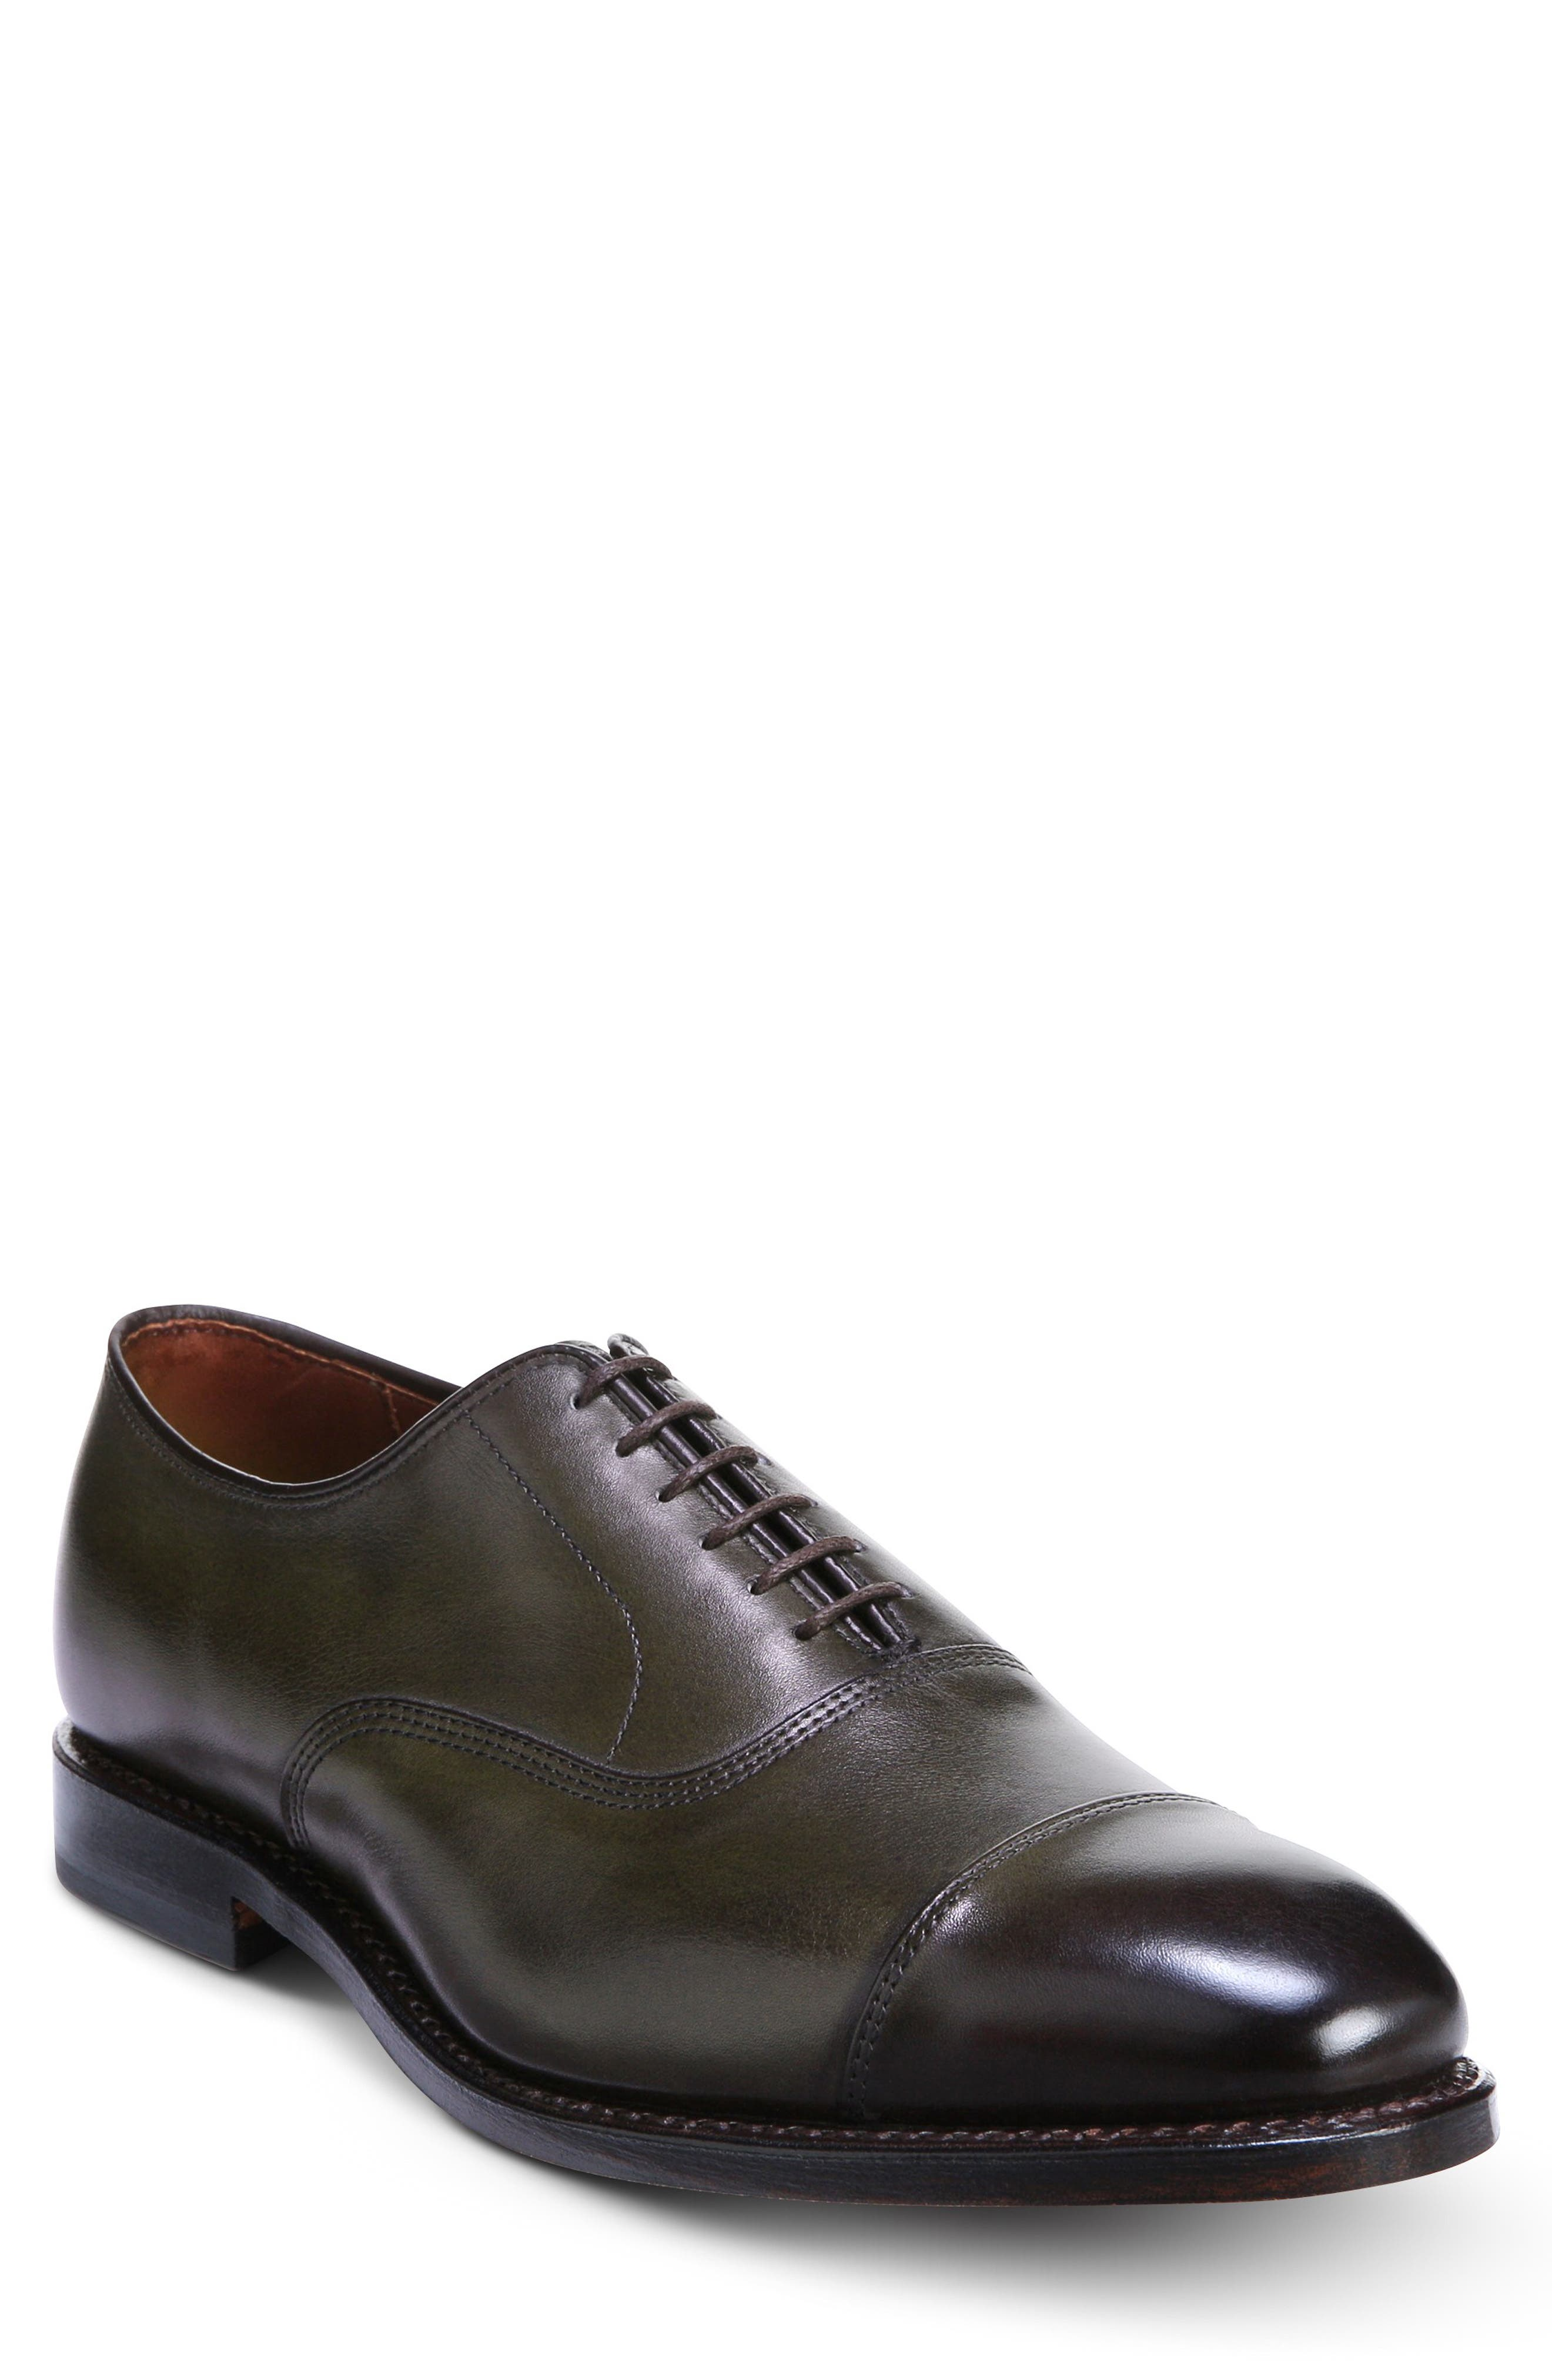 Subtle yet striking, this six-eyelet cap-toe oxford features a full leather lining, a single oak-eather sole and a fit that accommodates higher arches. The Park Avenue has been worn by four presidents on their Inauguration Day, making it a true American icon. Style Name: Allen Edmonds Park Avenue Oxford (Men). Style Number: 53202 4. Available in stores.